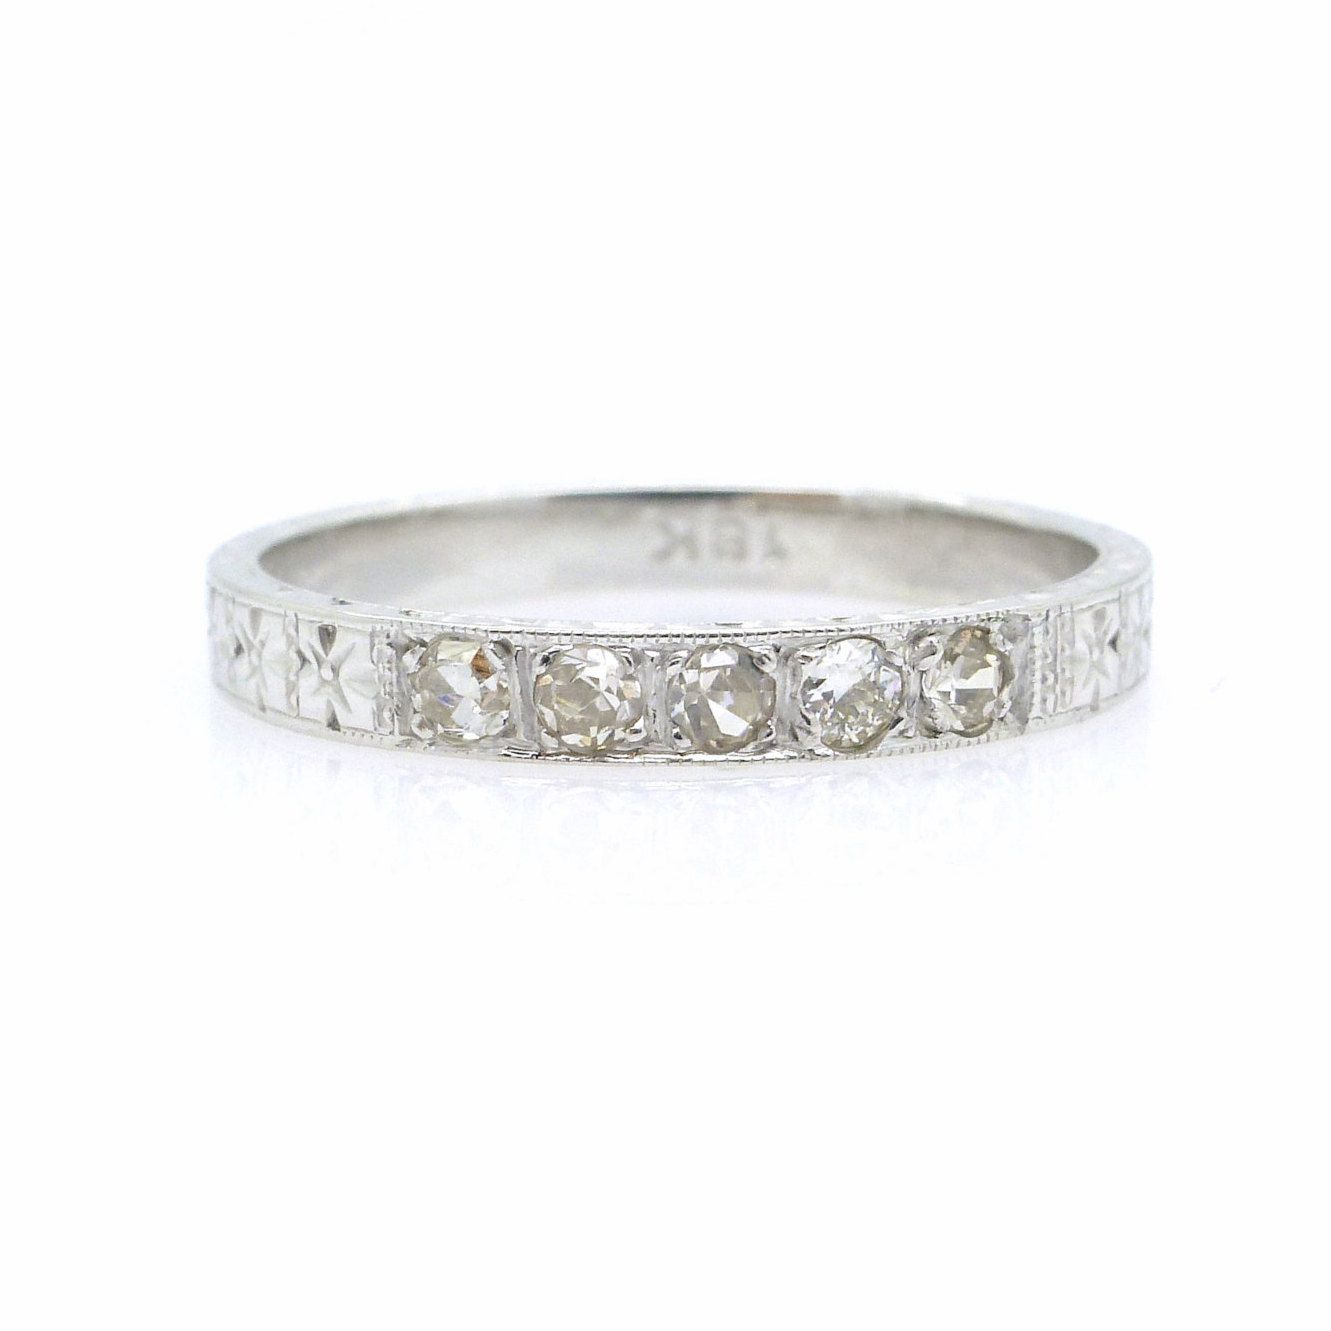 Art Deco Diamond Wedding Band 1920's Antique 18k White Gold Engraved Vintage Anniversary Eternity Ring Gatsby Style Stacking Free Ship By: Gatsby Style Wedding Rings At Reisefeber.org